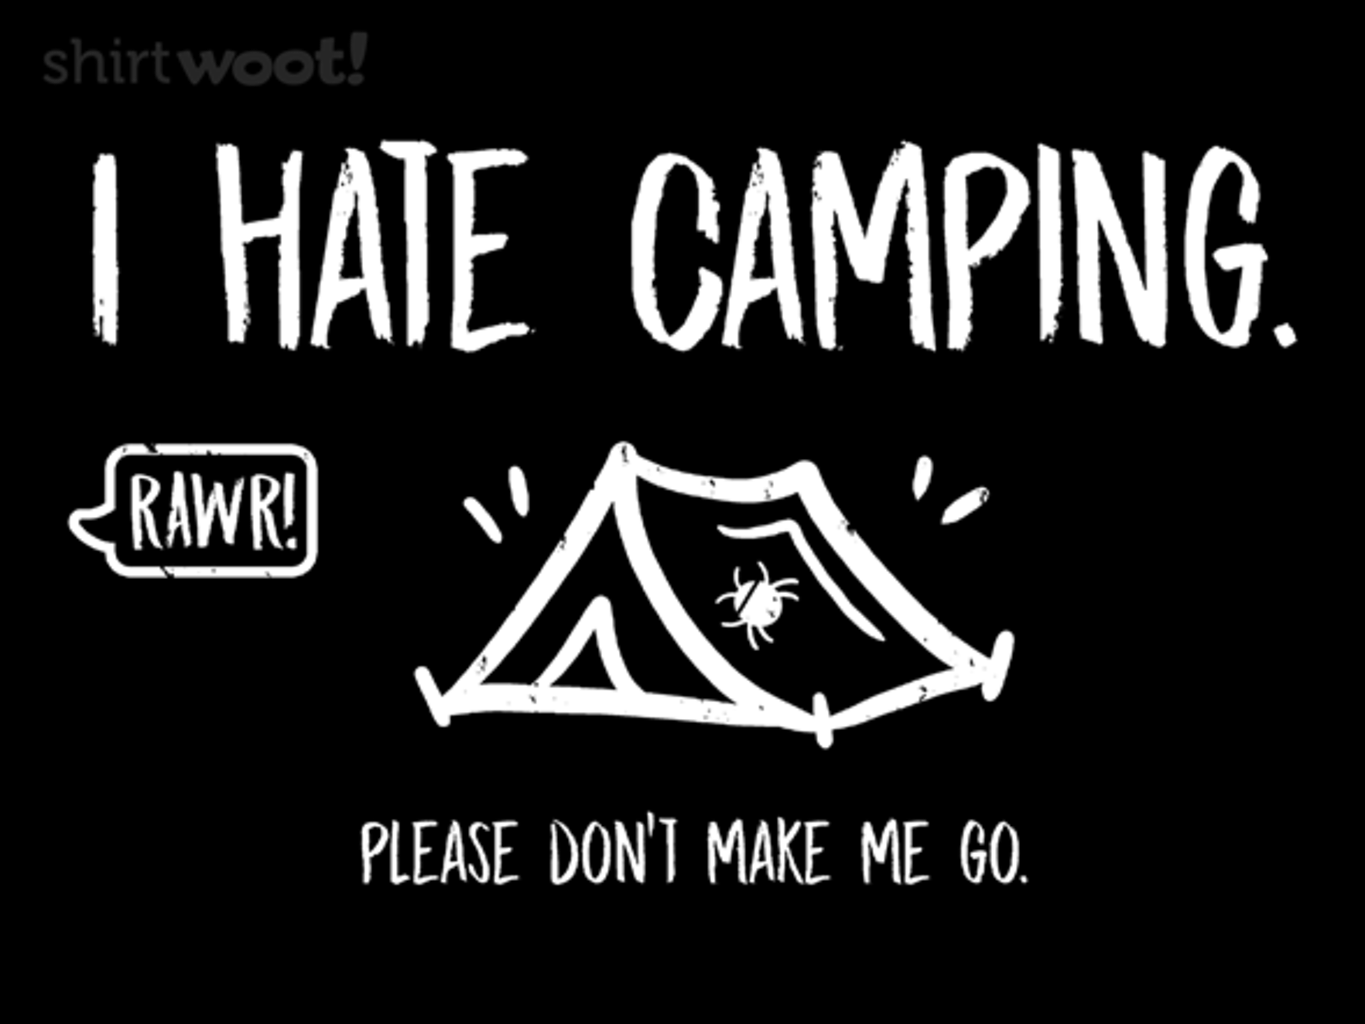 Woot!: I Hate Camping